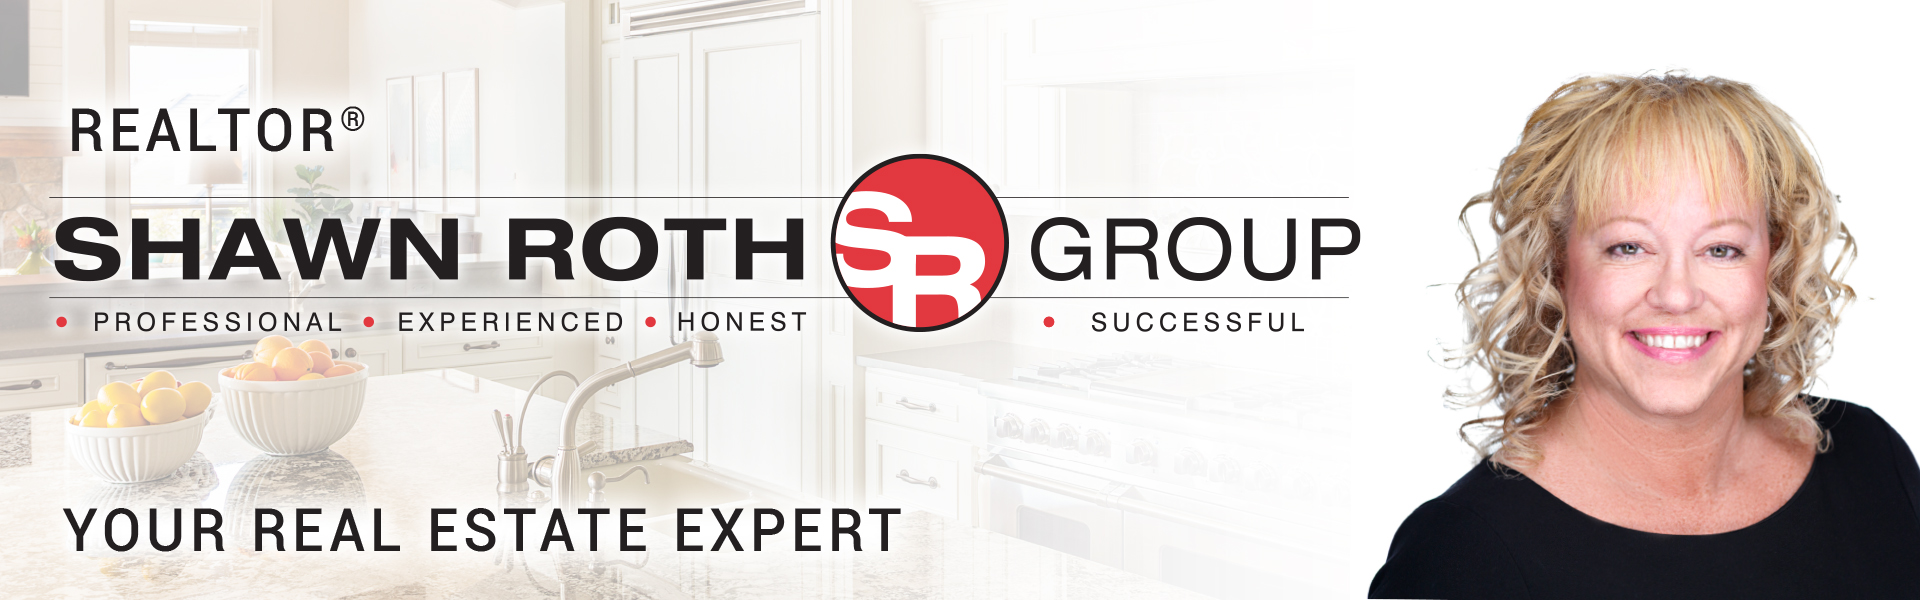 Shawn Roth Group